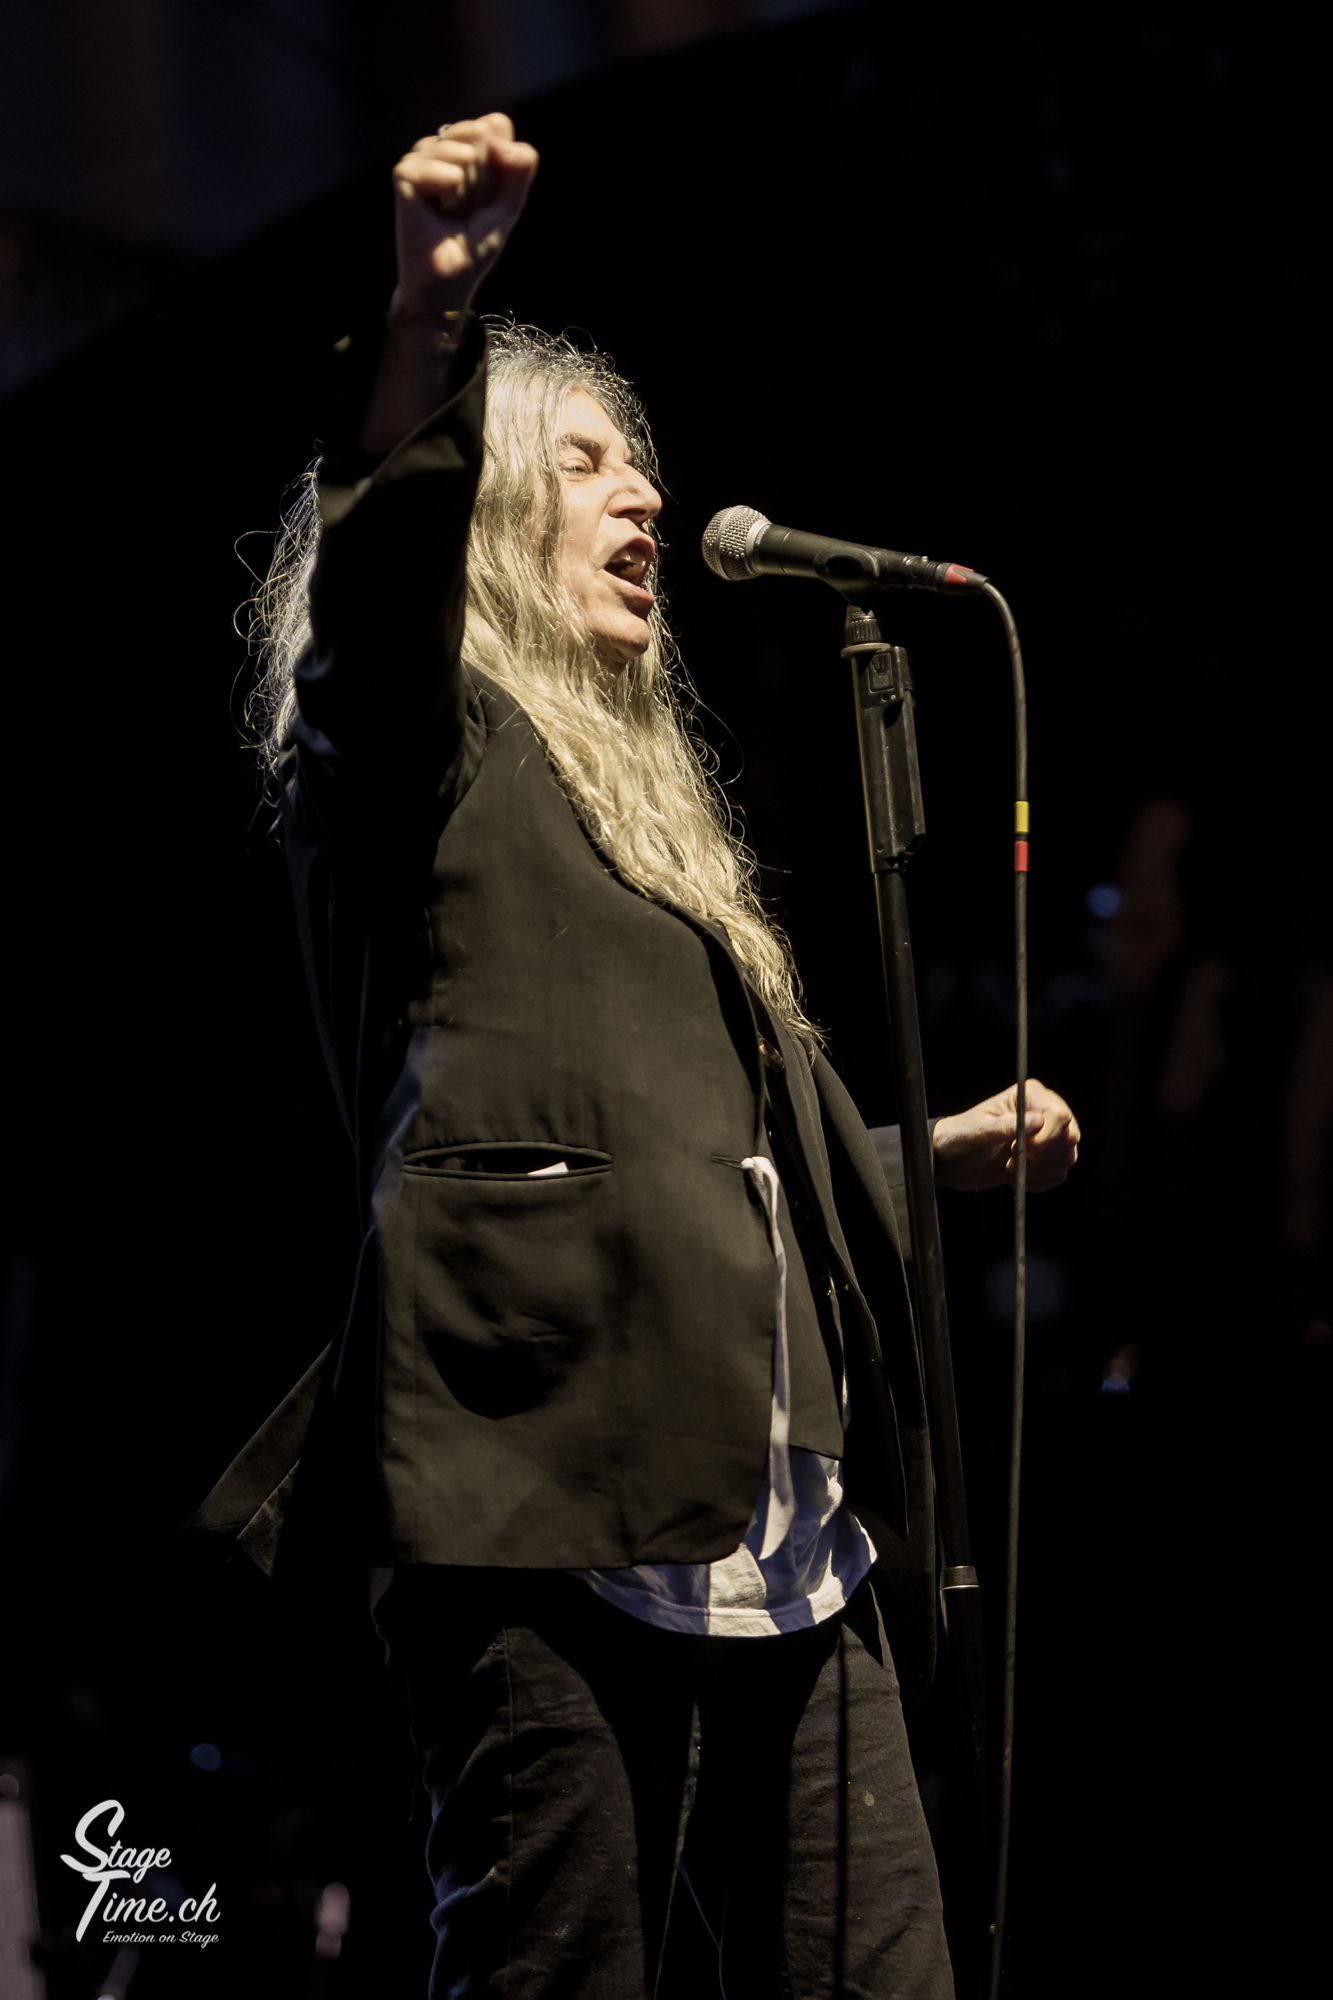 Patti_Smith___📷_Christoph_Gurtner___stagetime.ch-4